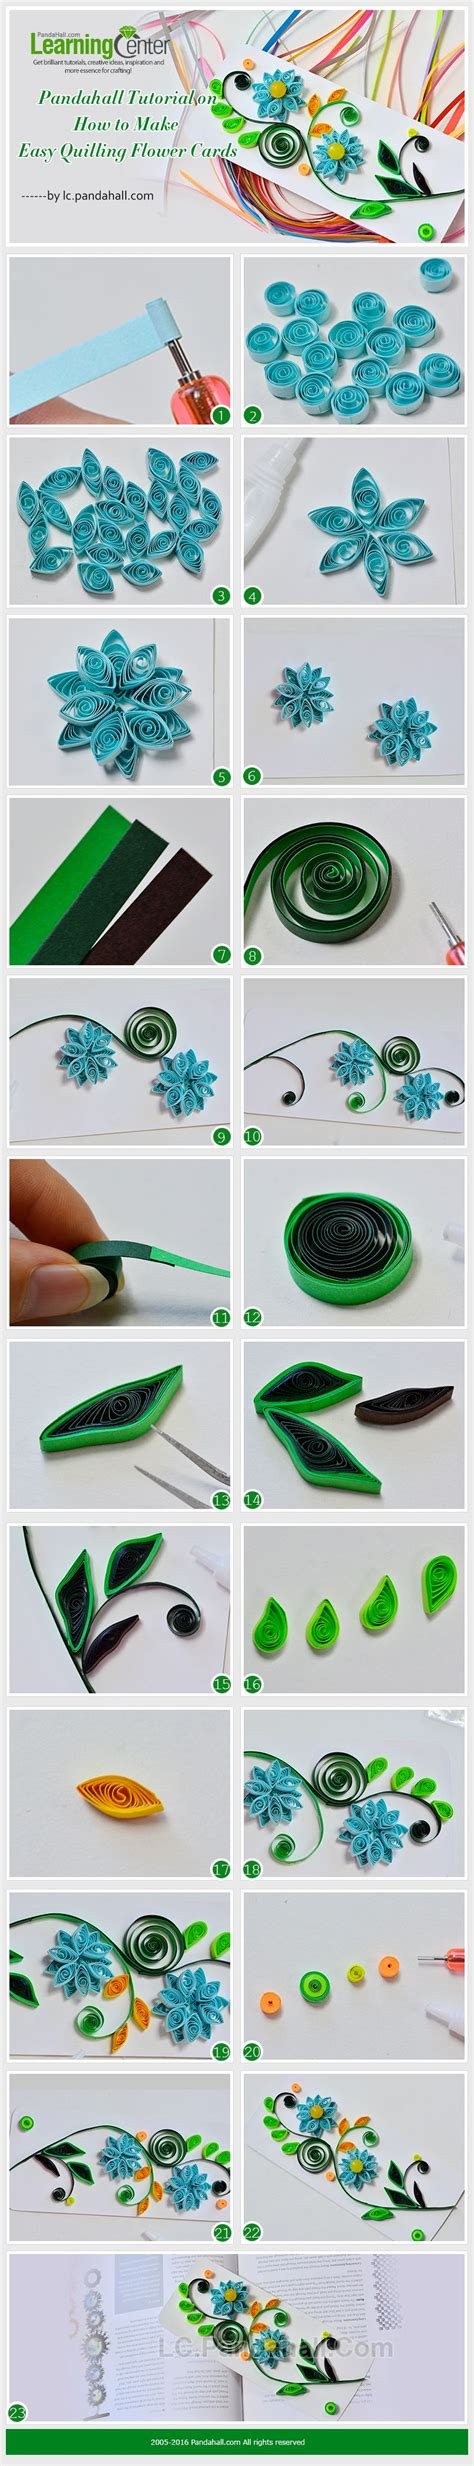 quilling easy tutorial tutorial on how to make easy quilling flower cards from lc